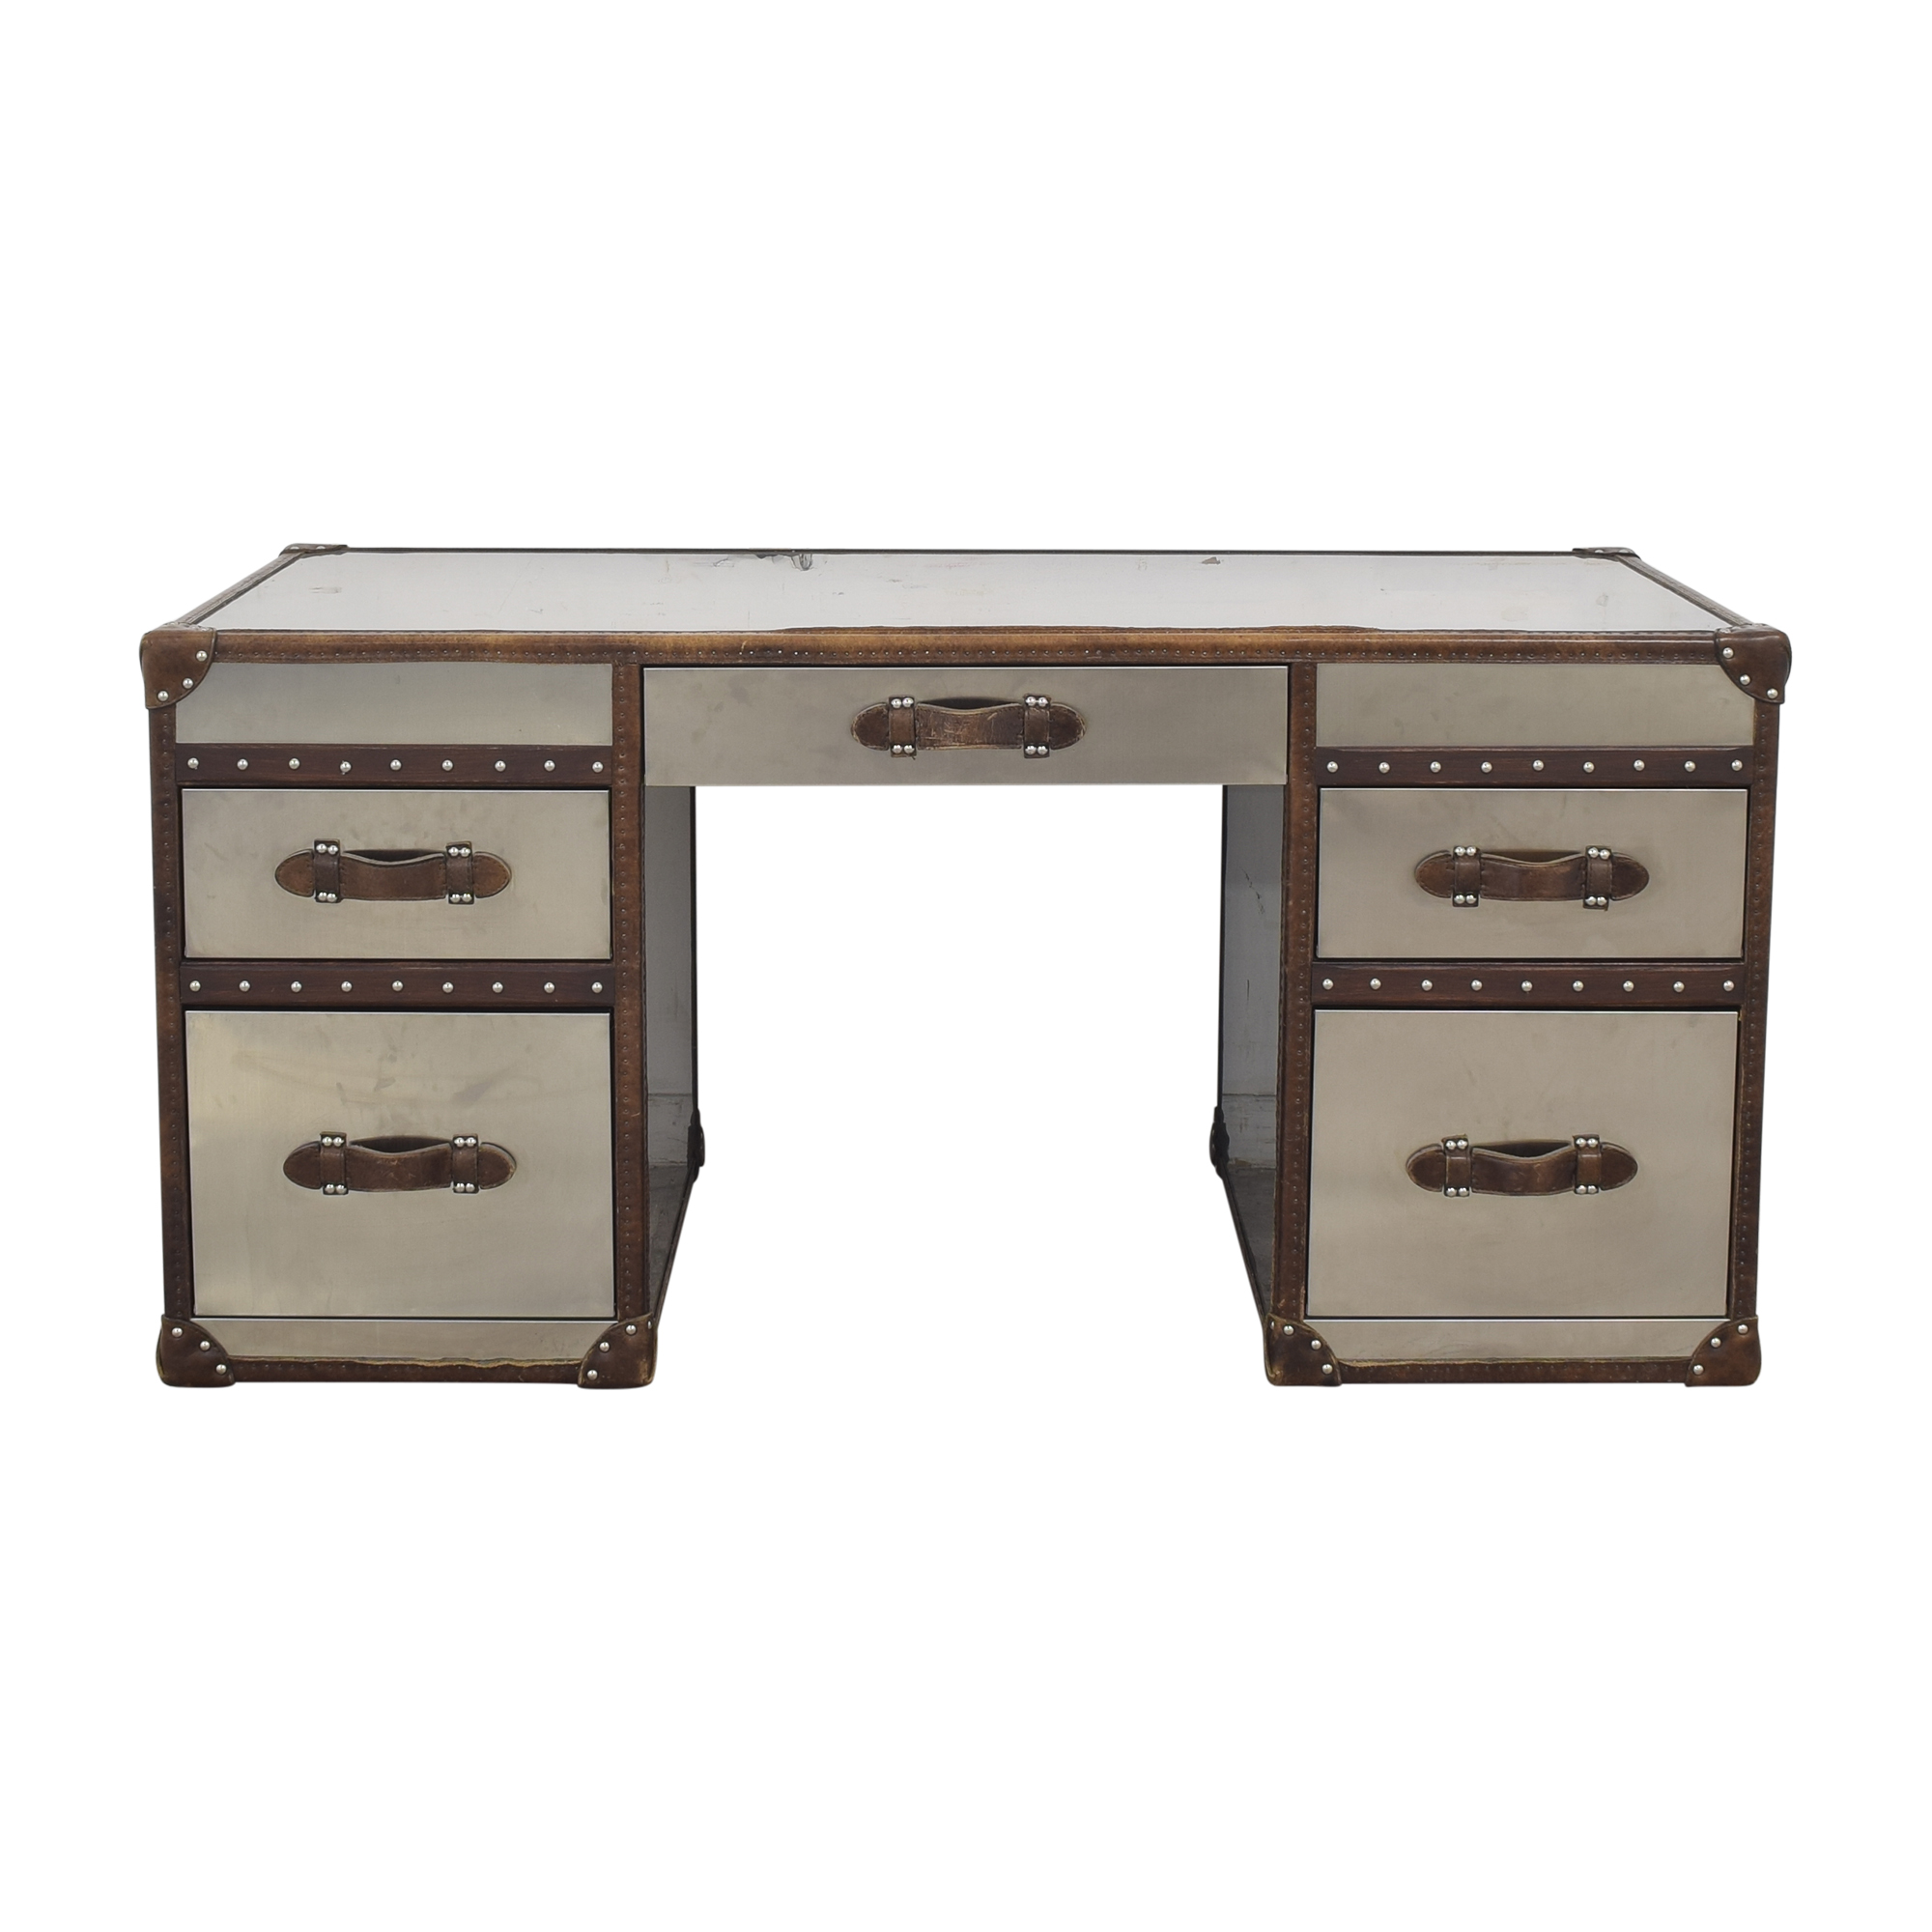 buy Restoration Hardware Mayfair Streamer Trunk Desk Restoration Hardware Home Office Desks